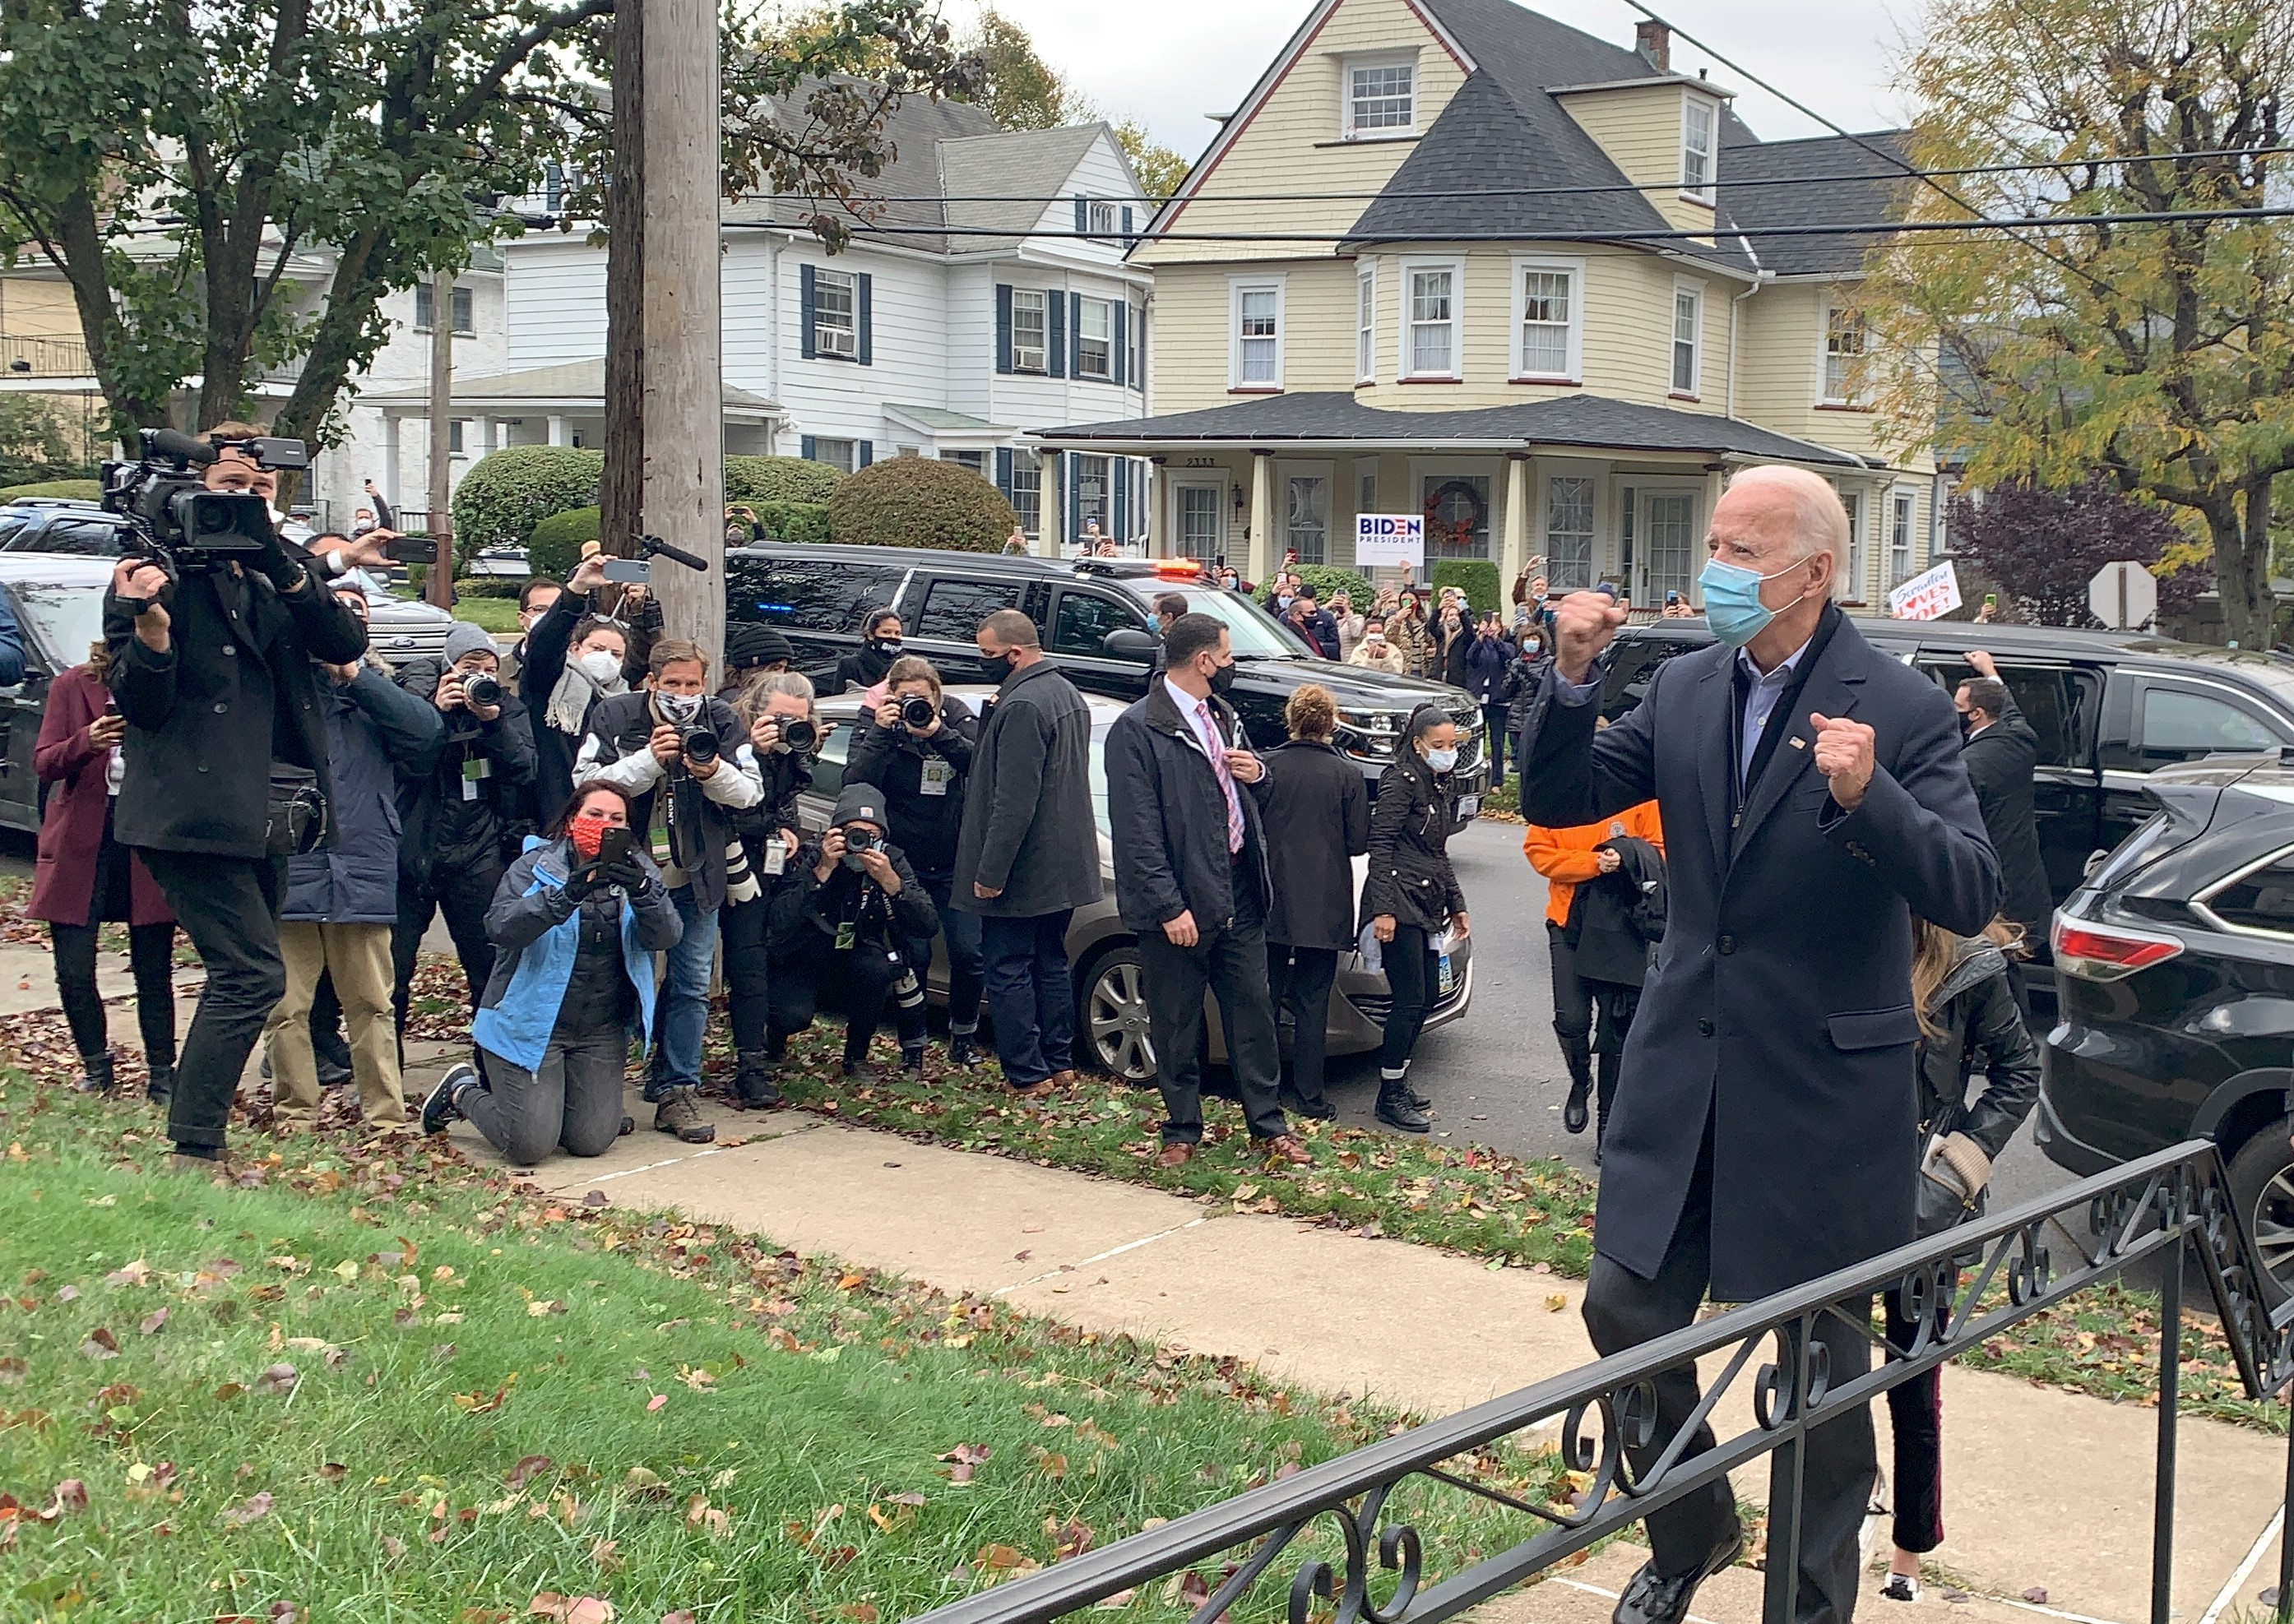 A fired up Joe Biden arrives at his childhood home on North Washington Avenue in Scranton, PA.